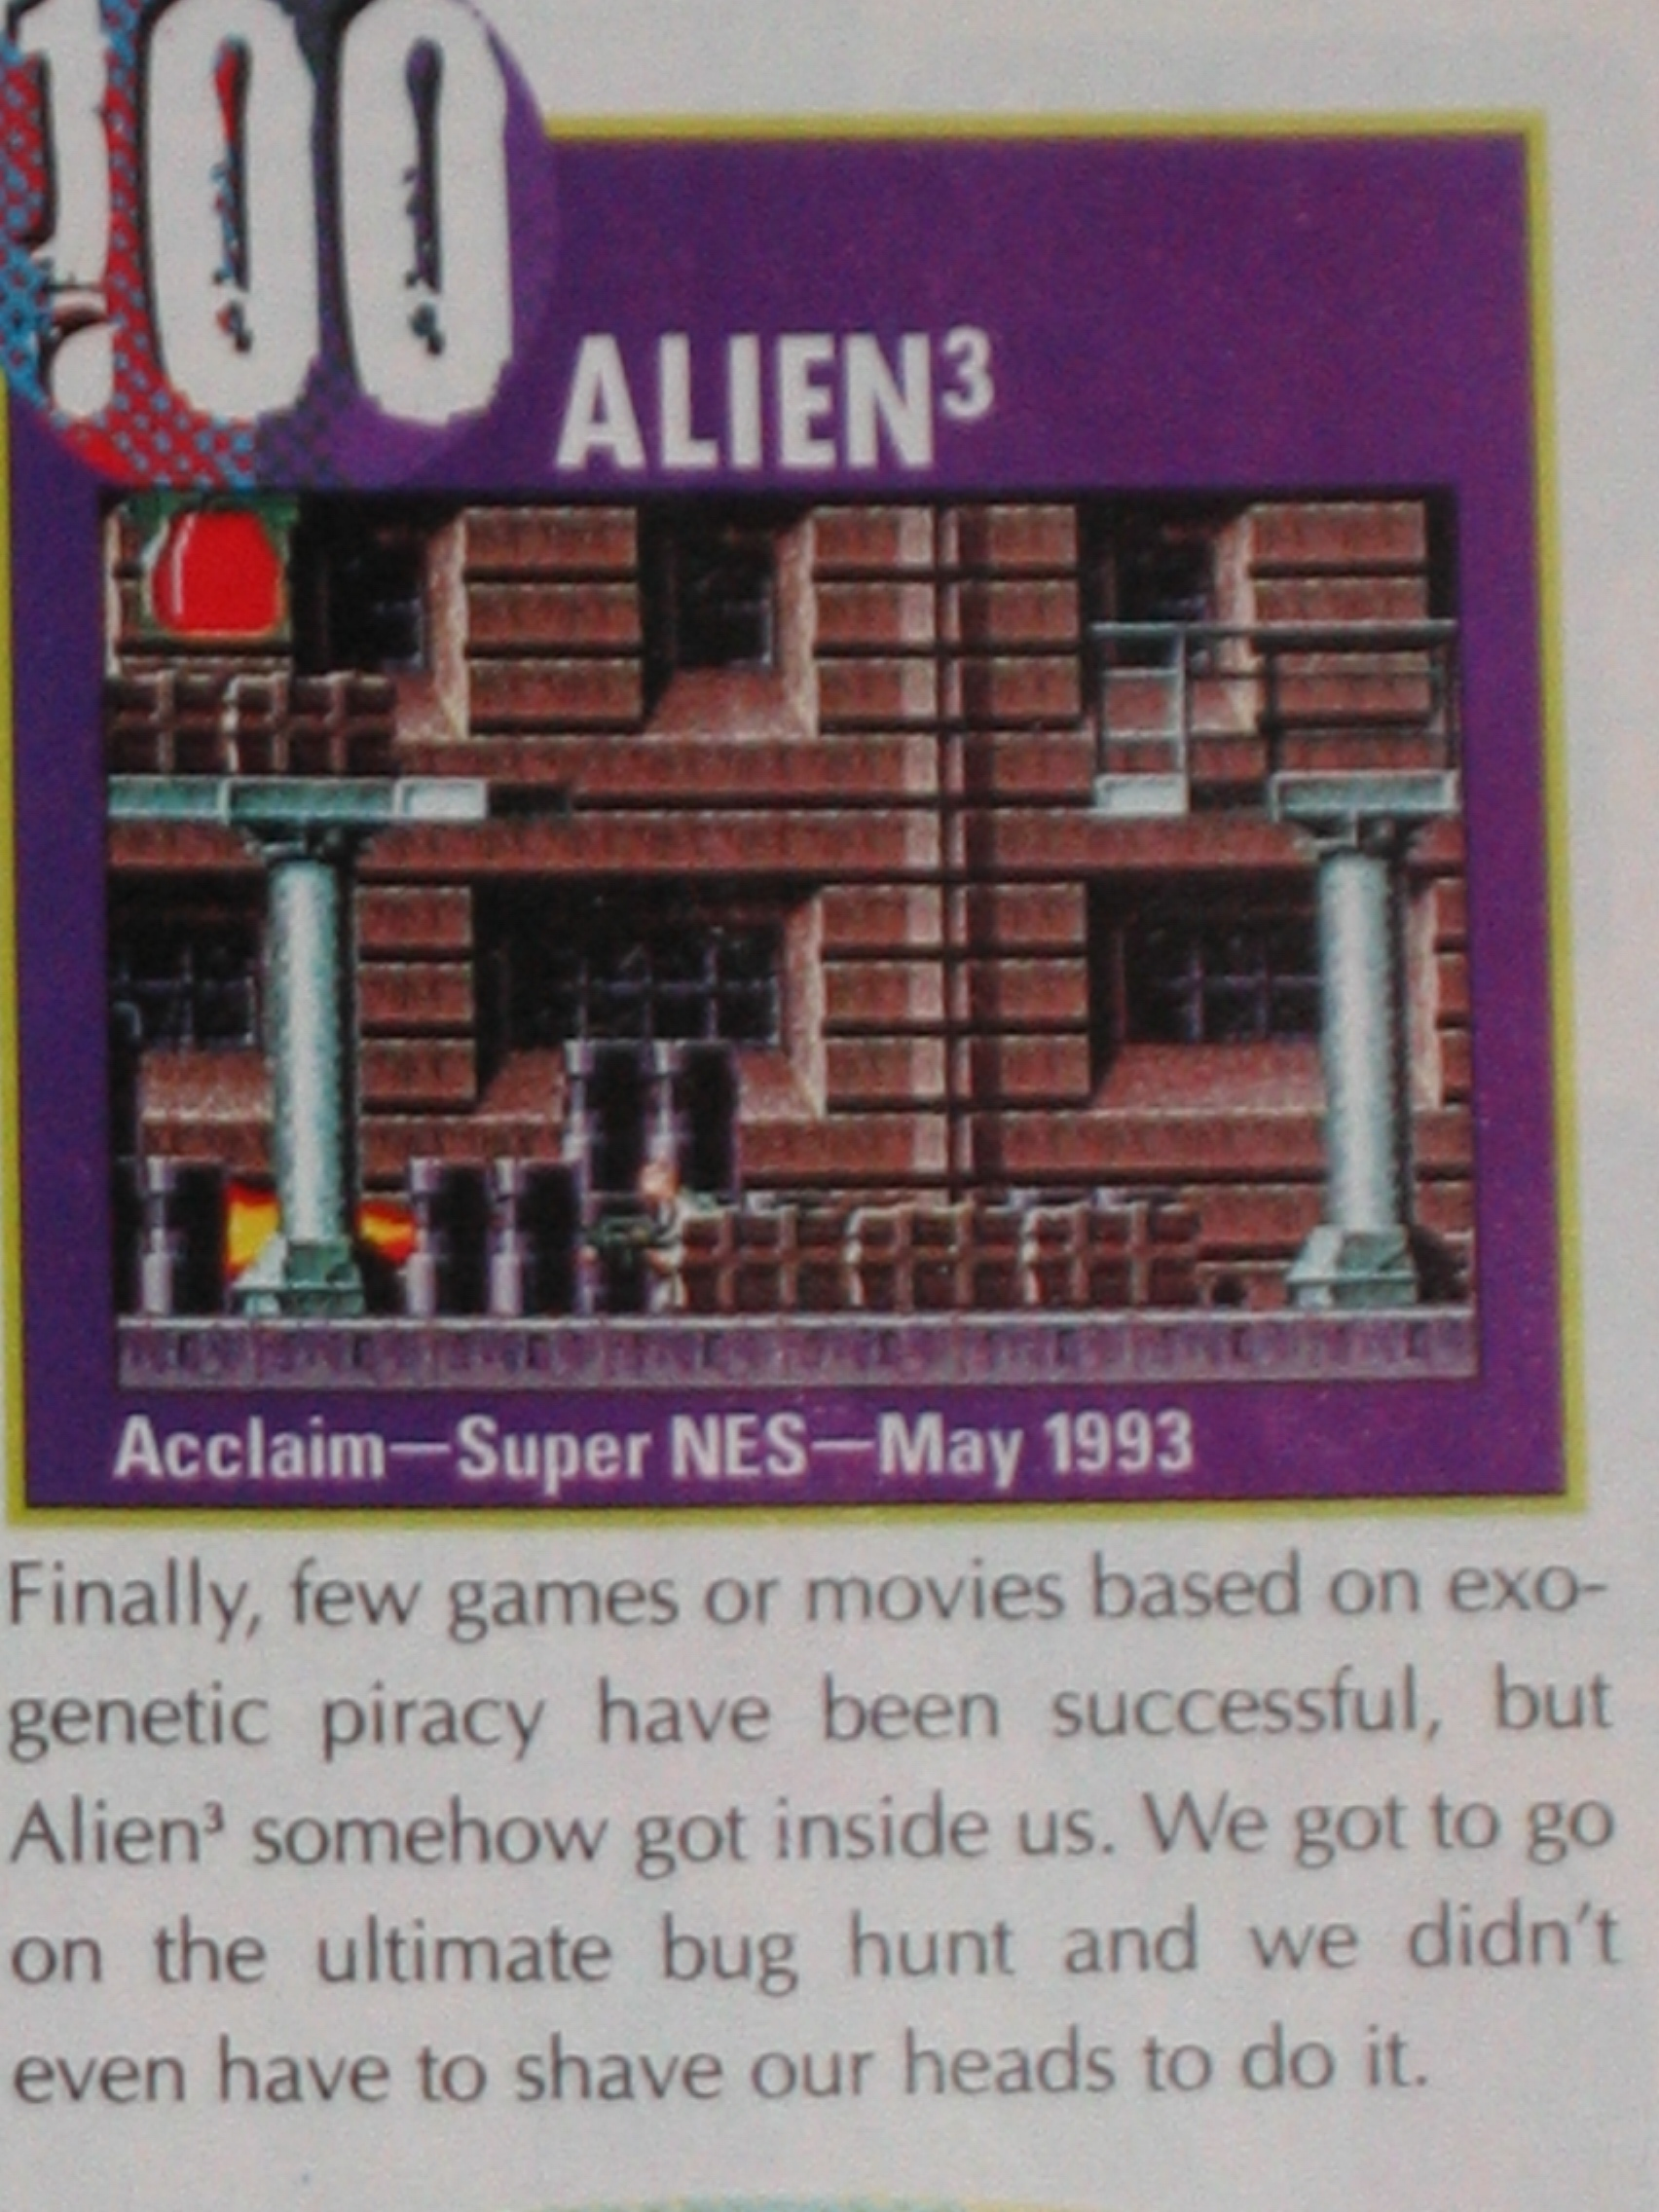 Alien³ made Nintendo Power's Top 100 at #100